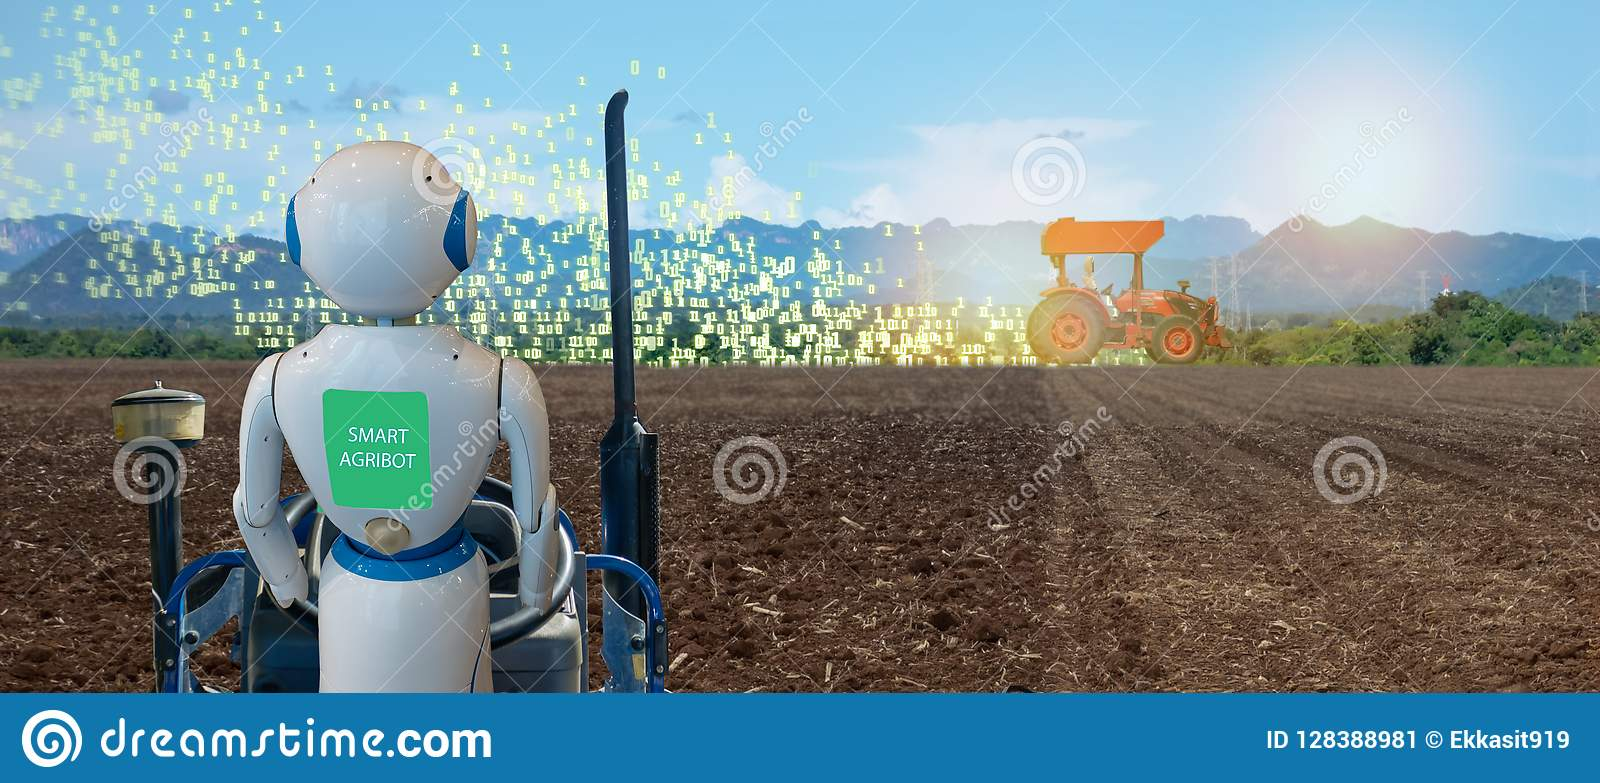 Iot smart farming, agriculture in industry 4.0 technology with artificial intelligence and machine learning concept. it help to im